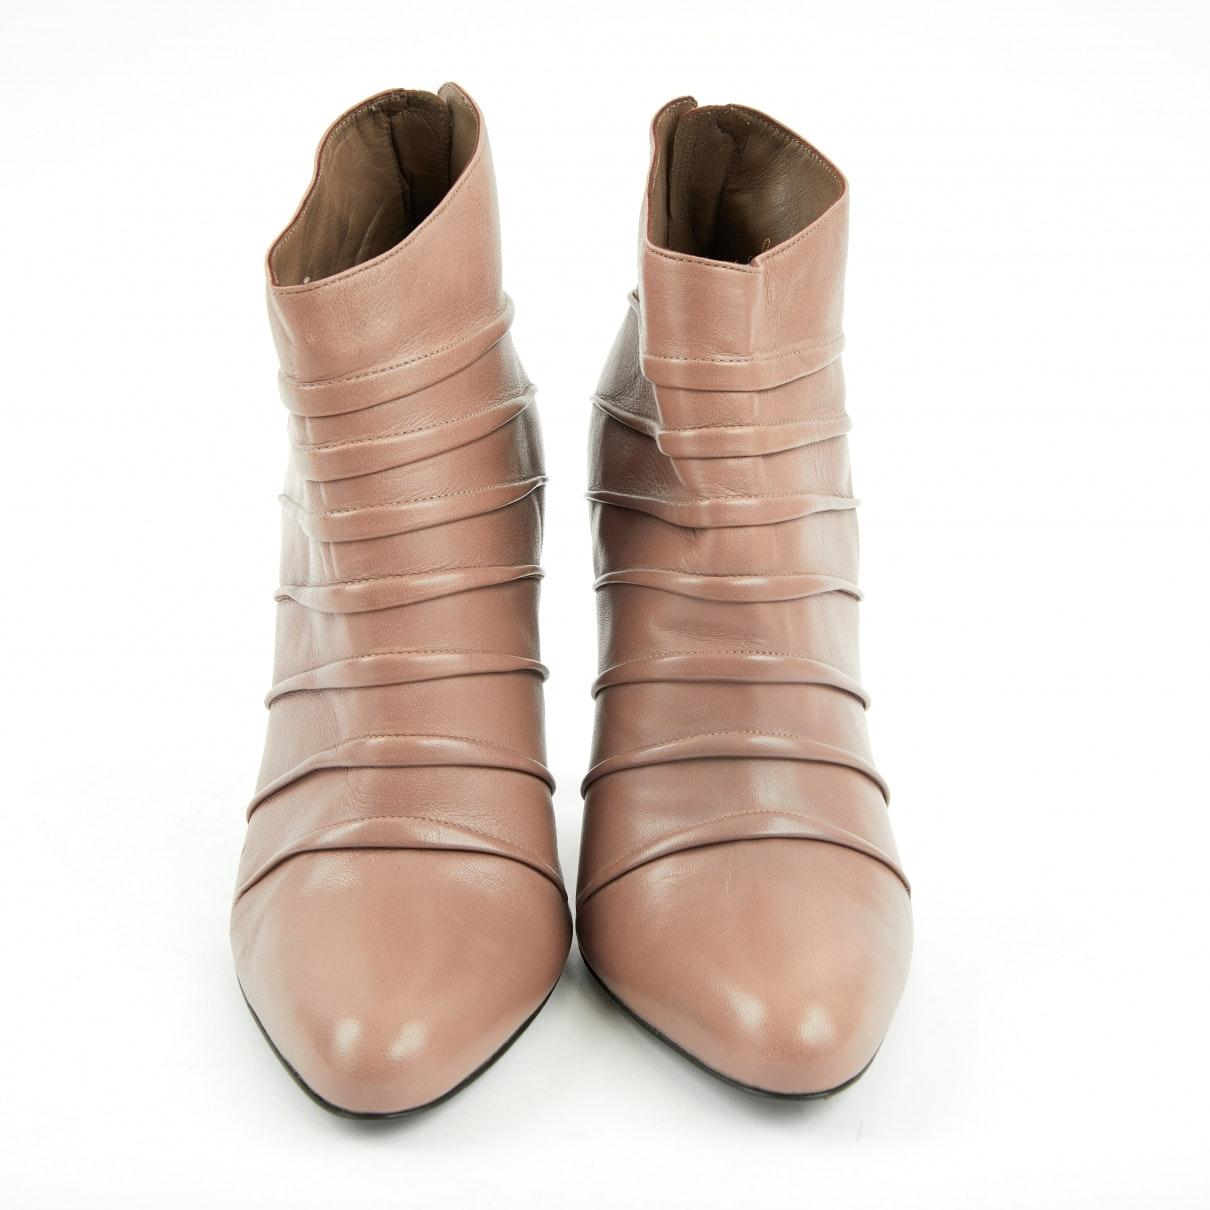 Barbara Bui n Pink Leather Ankle Boots